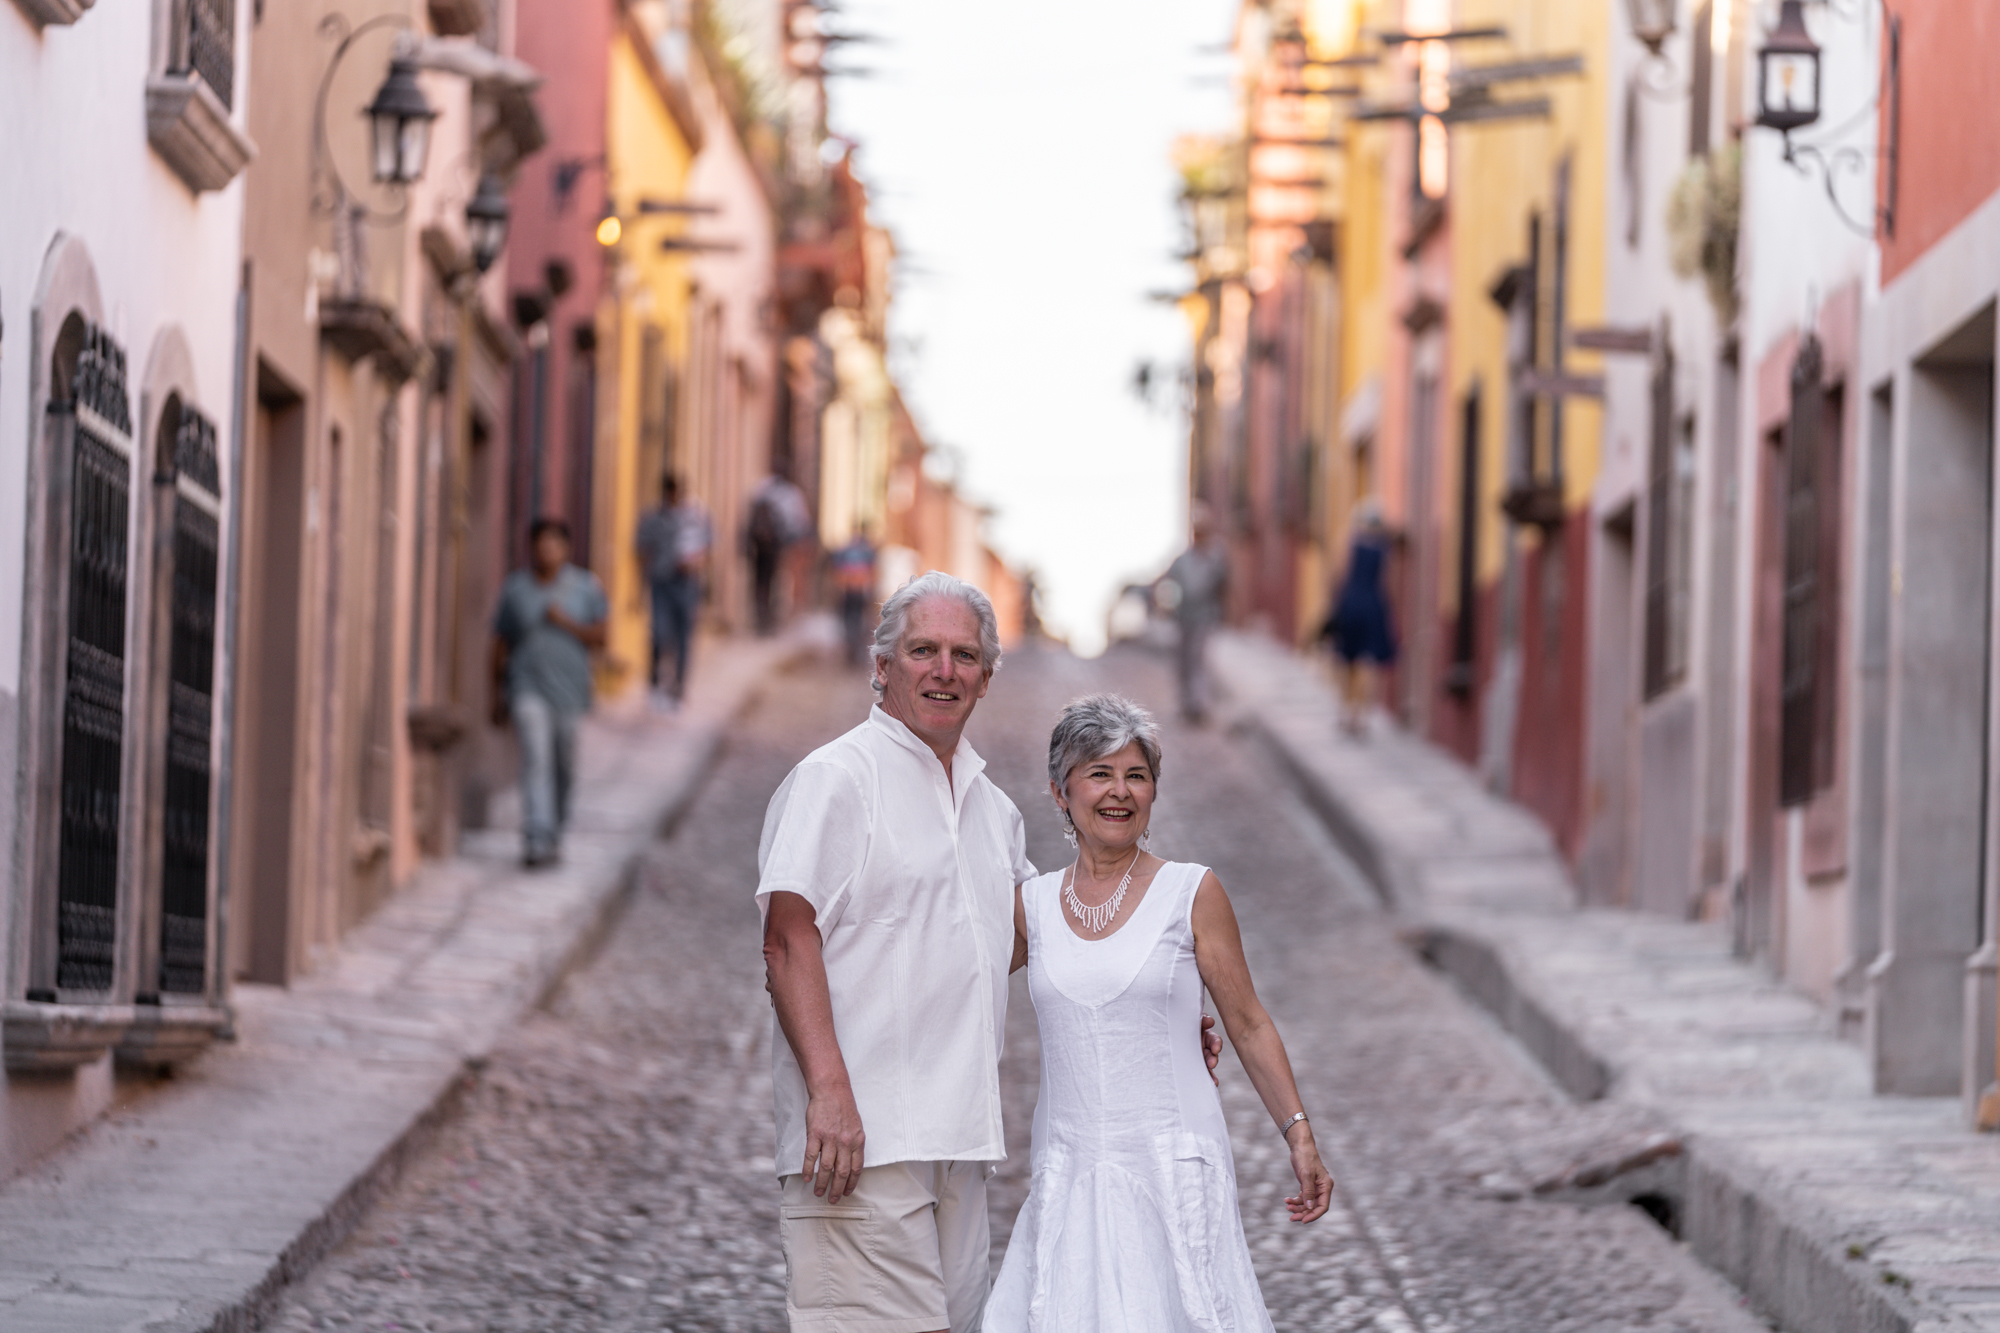 Photoshoot session in San Miguel de Allende with Suzanne and Leo-23.jpg